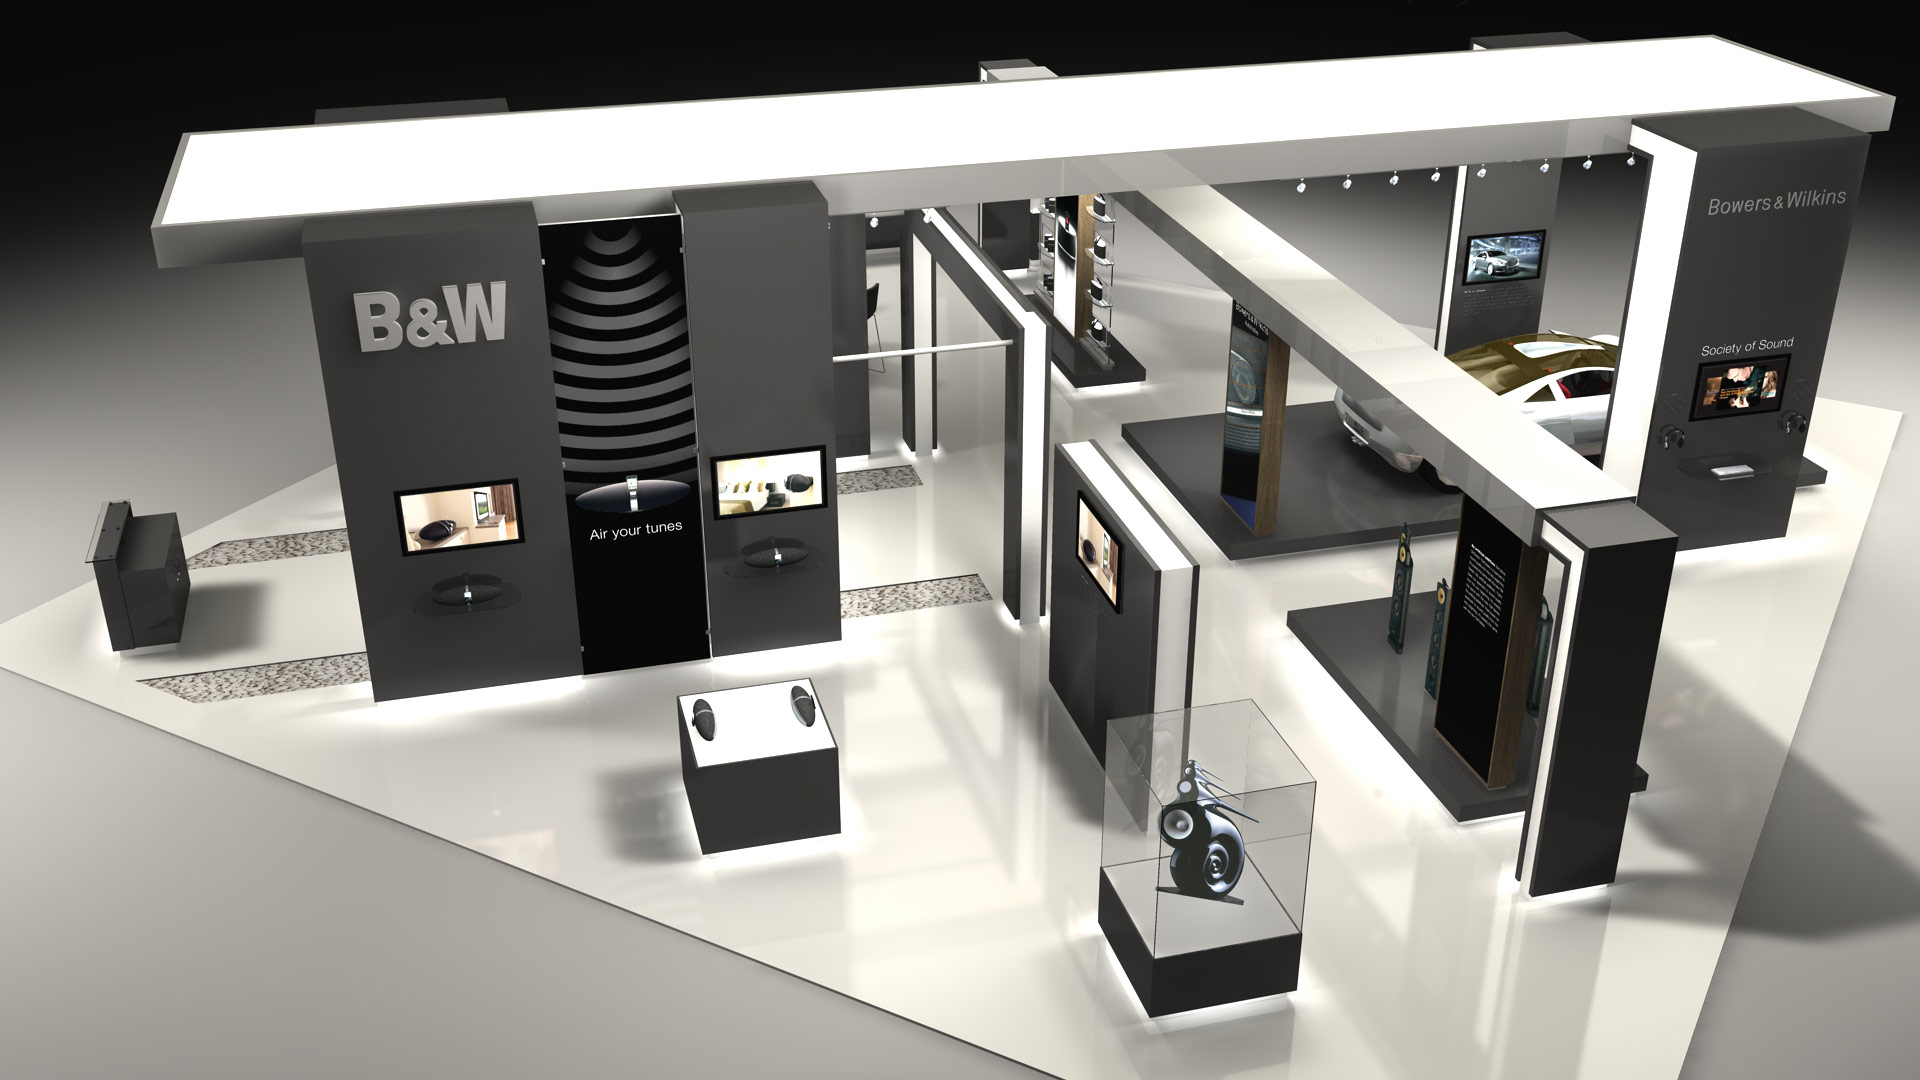 Exhibition Booth En Espanol : Bowers wilkins ces las vegas thomas manss company